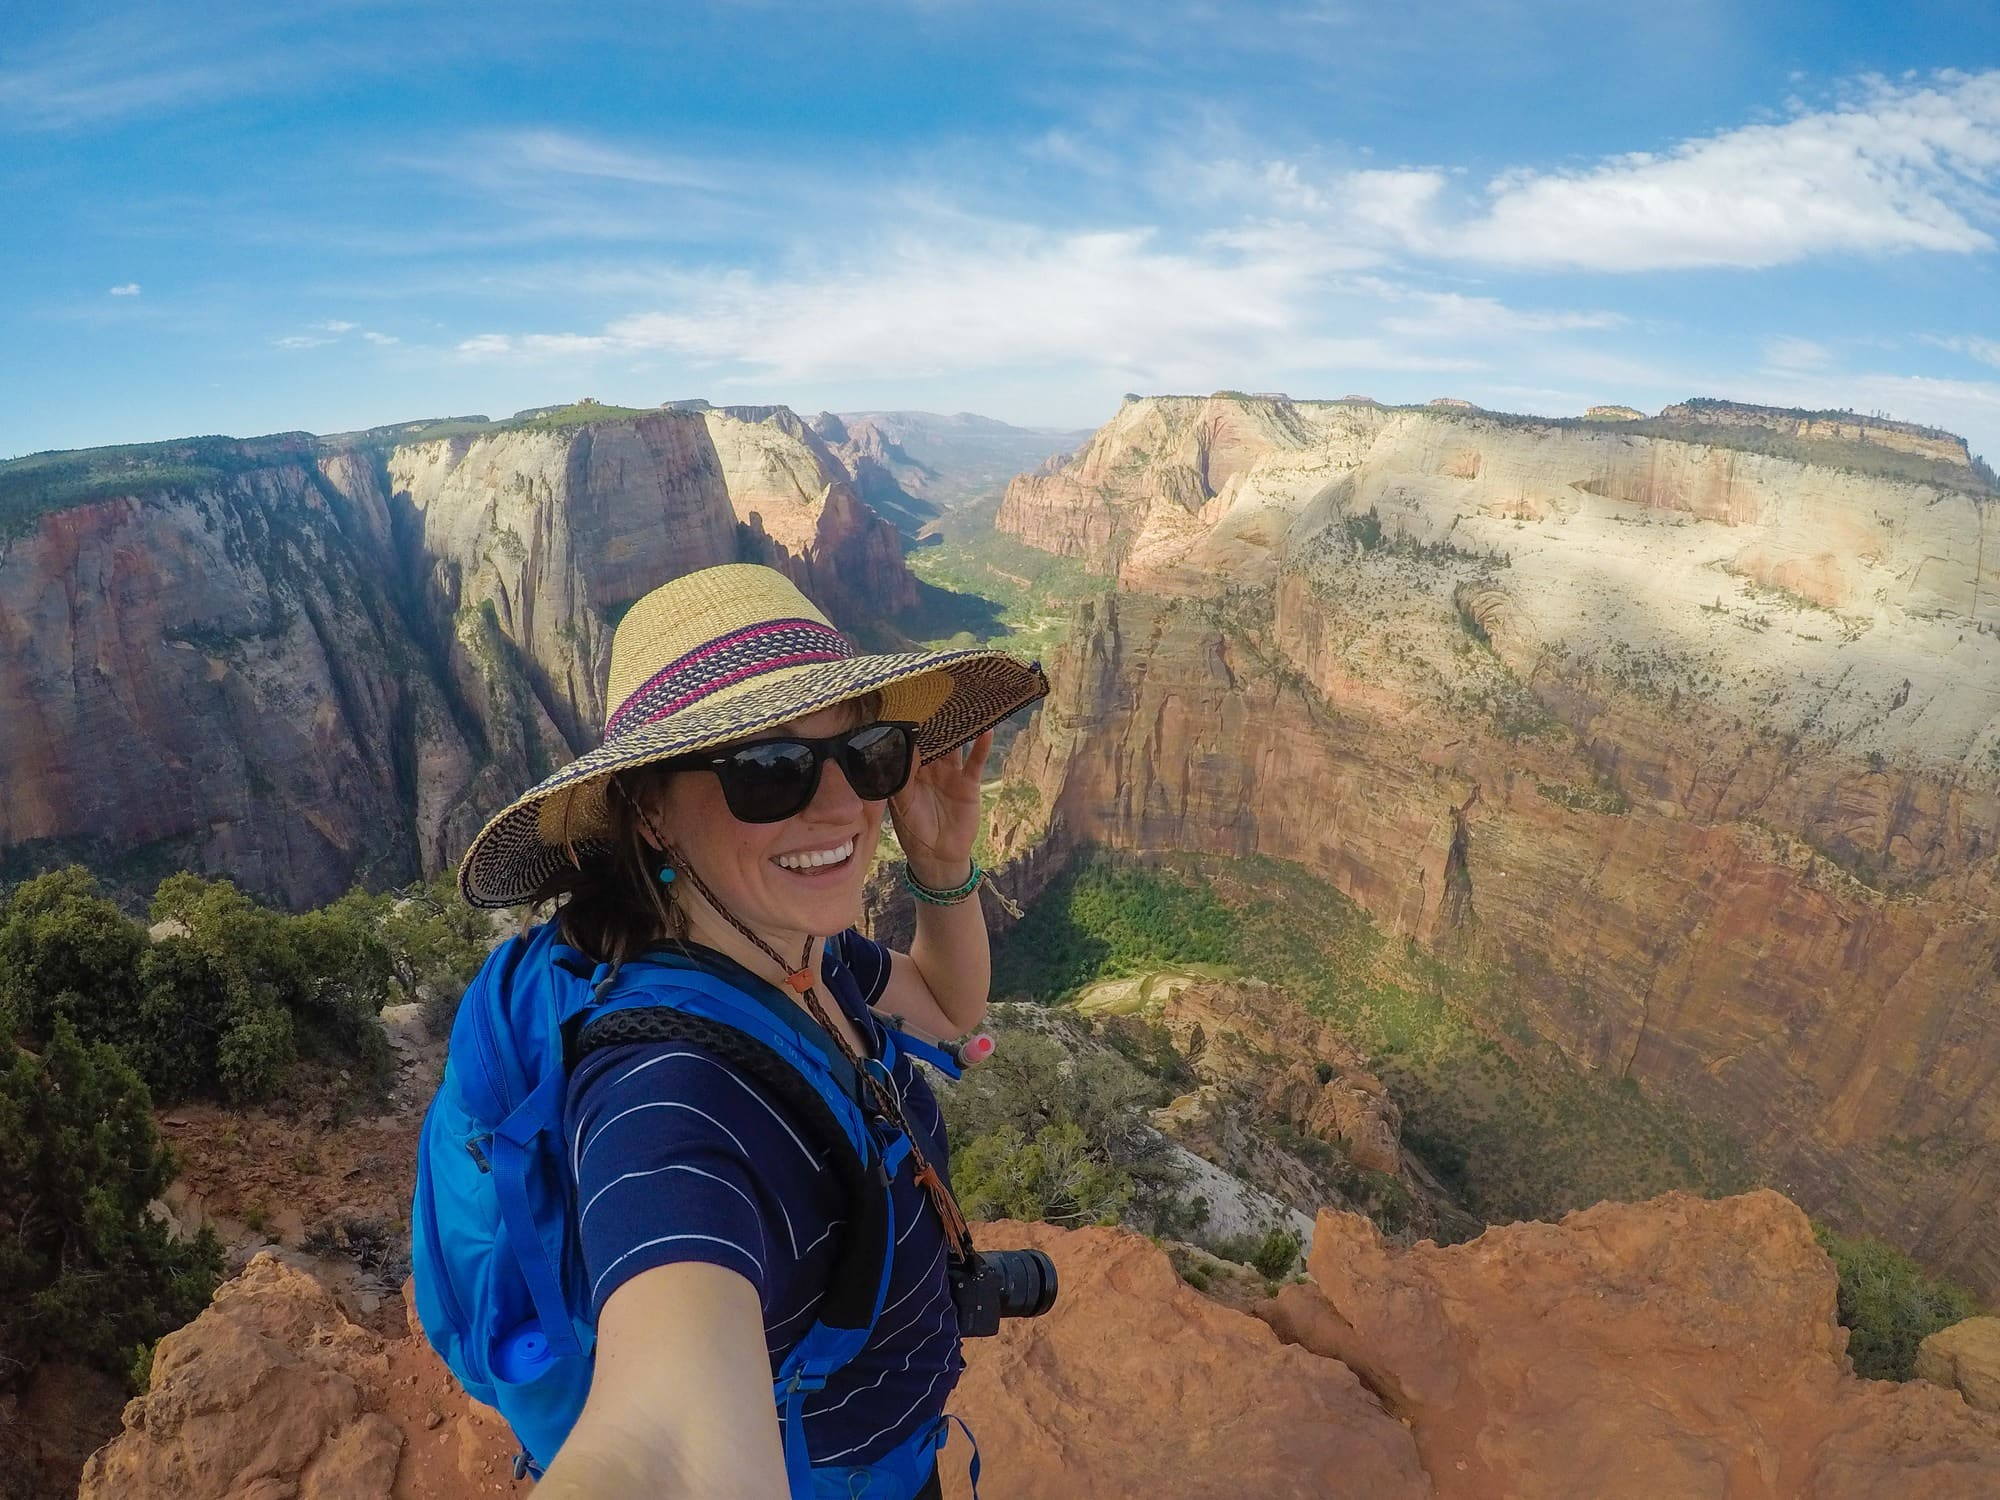 Planning a trip to the gorgeous Utah desert? Learn what clothing and gear you'll need to deal with the extreme weather in this Southern Utah packing list.